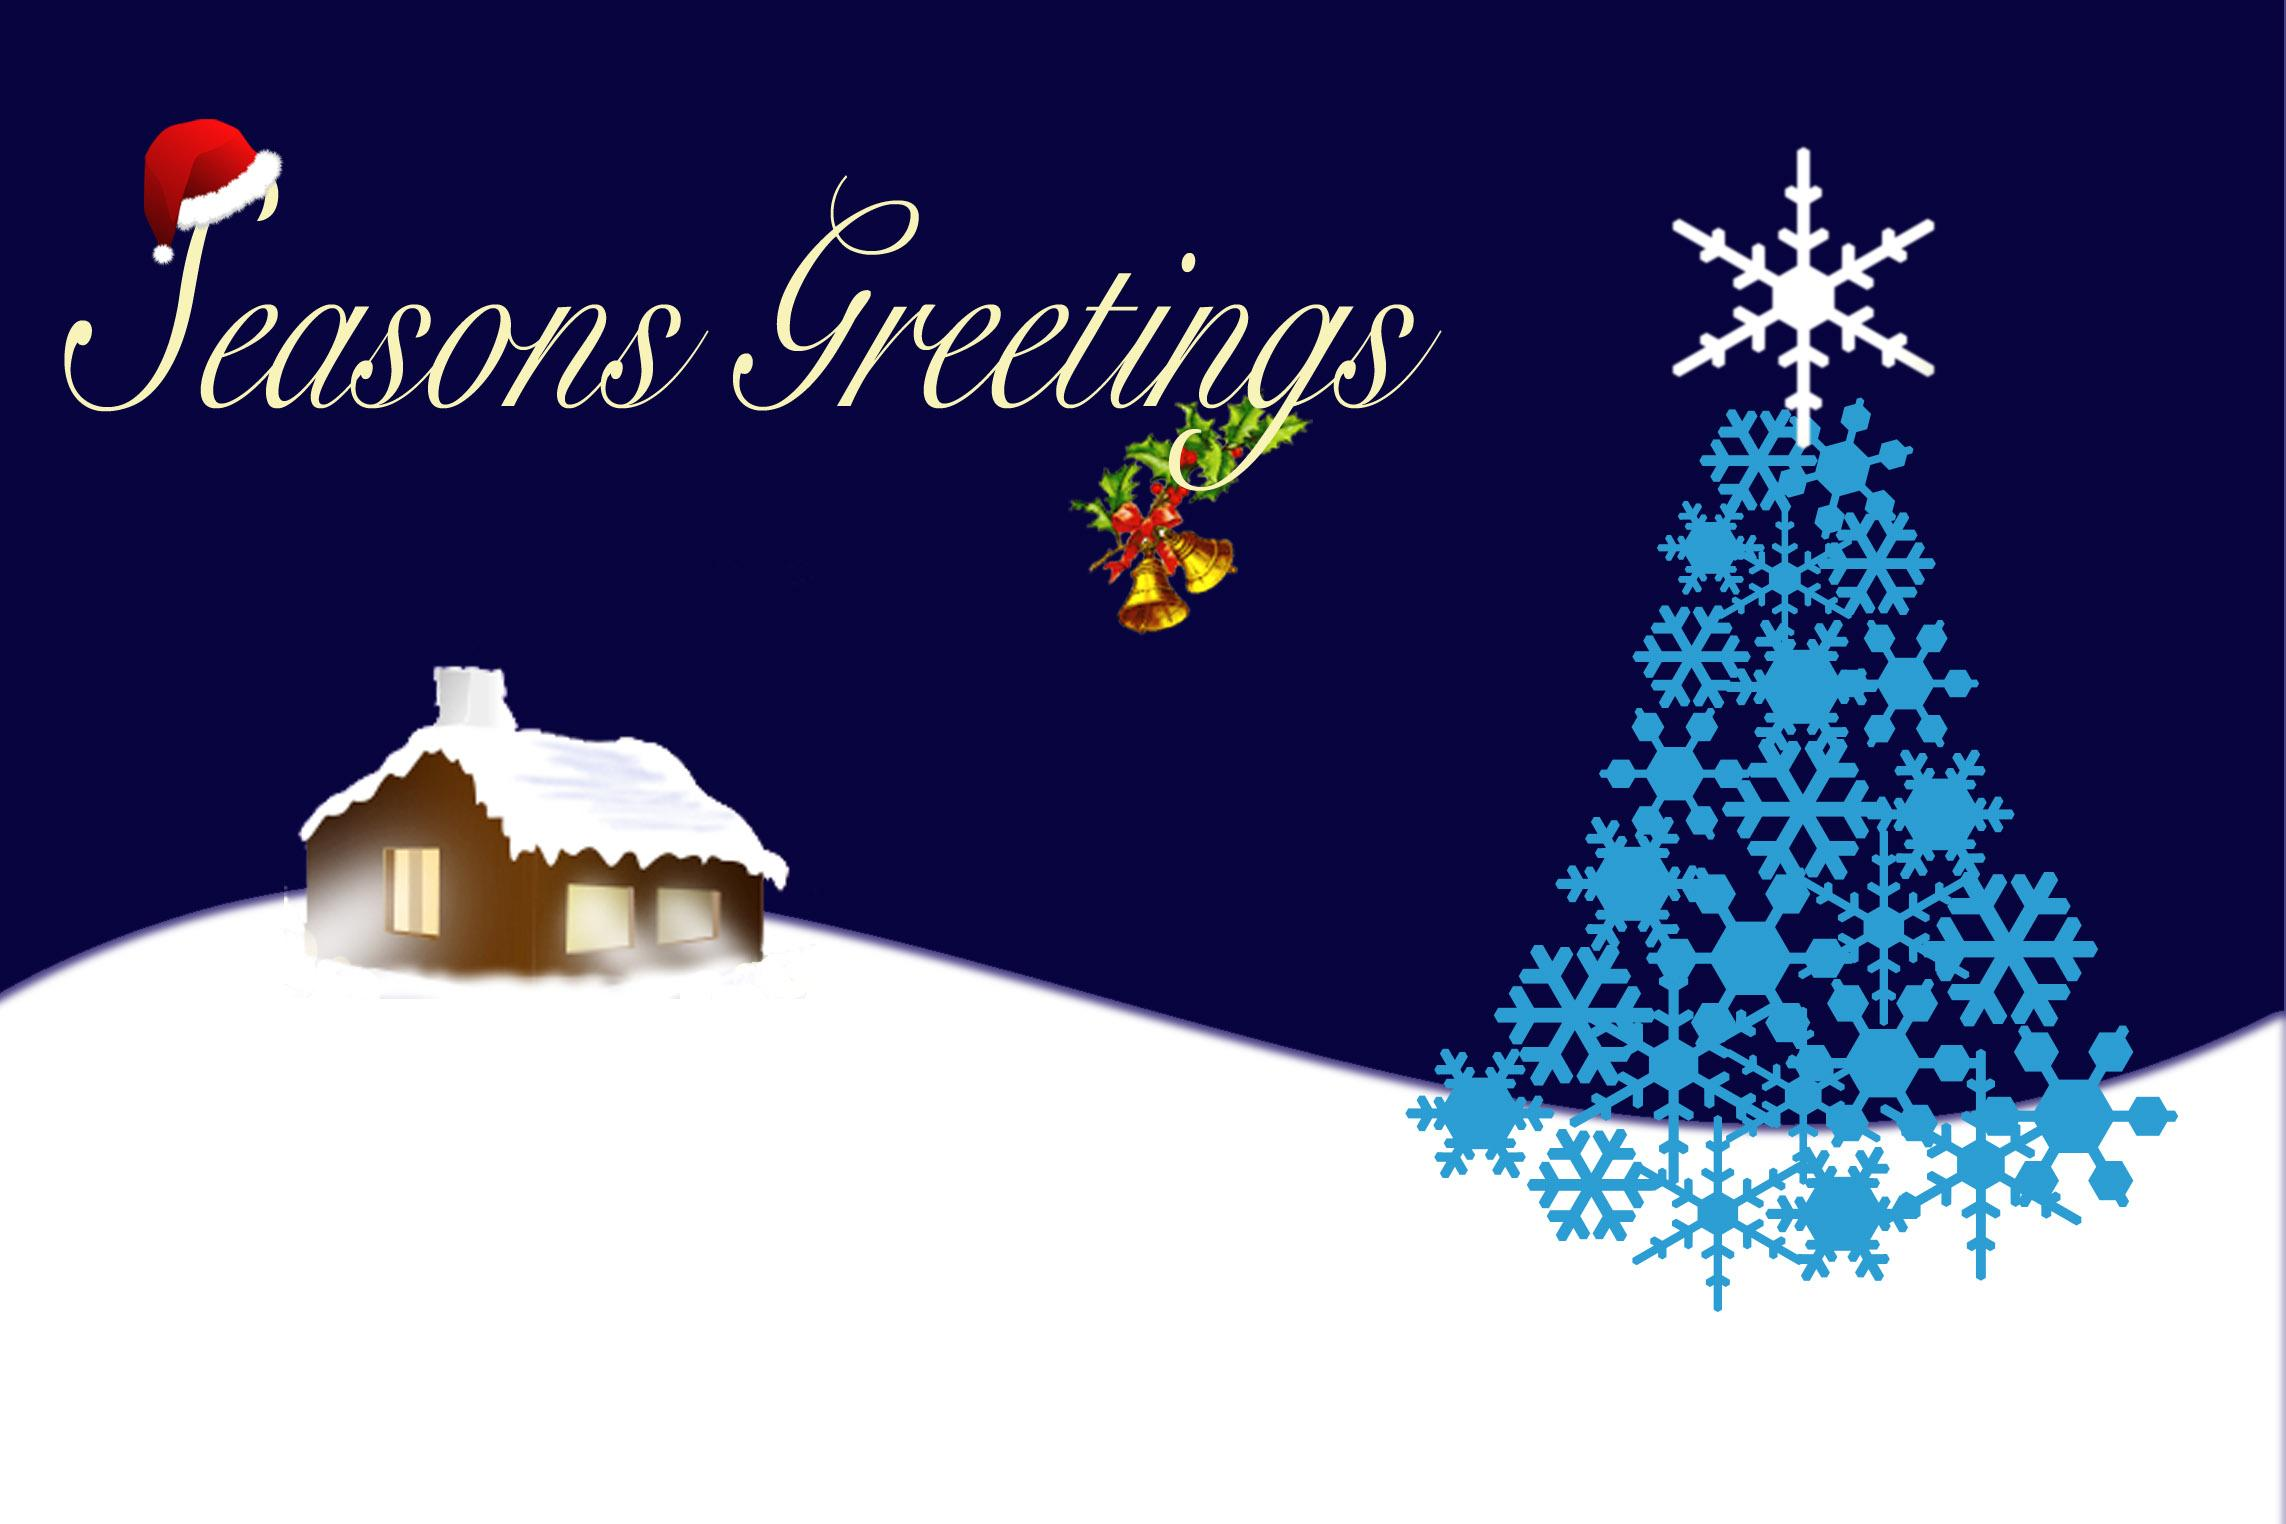 Seasons greetings wallpapers wallpaper cave hd seasons greetings wallpaper download m4hsunfo